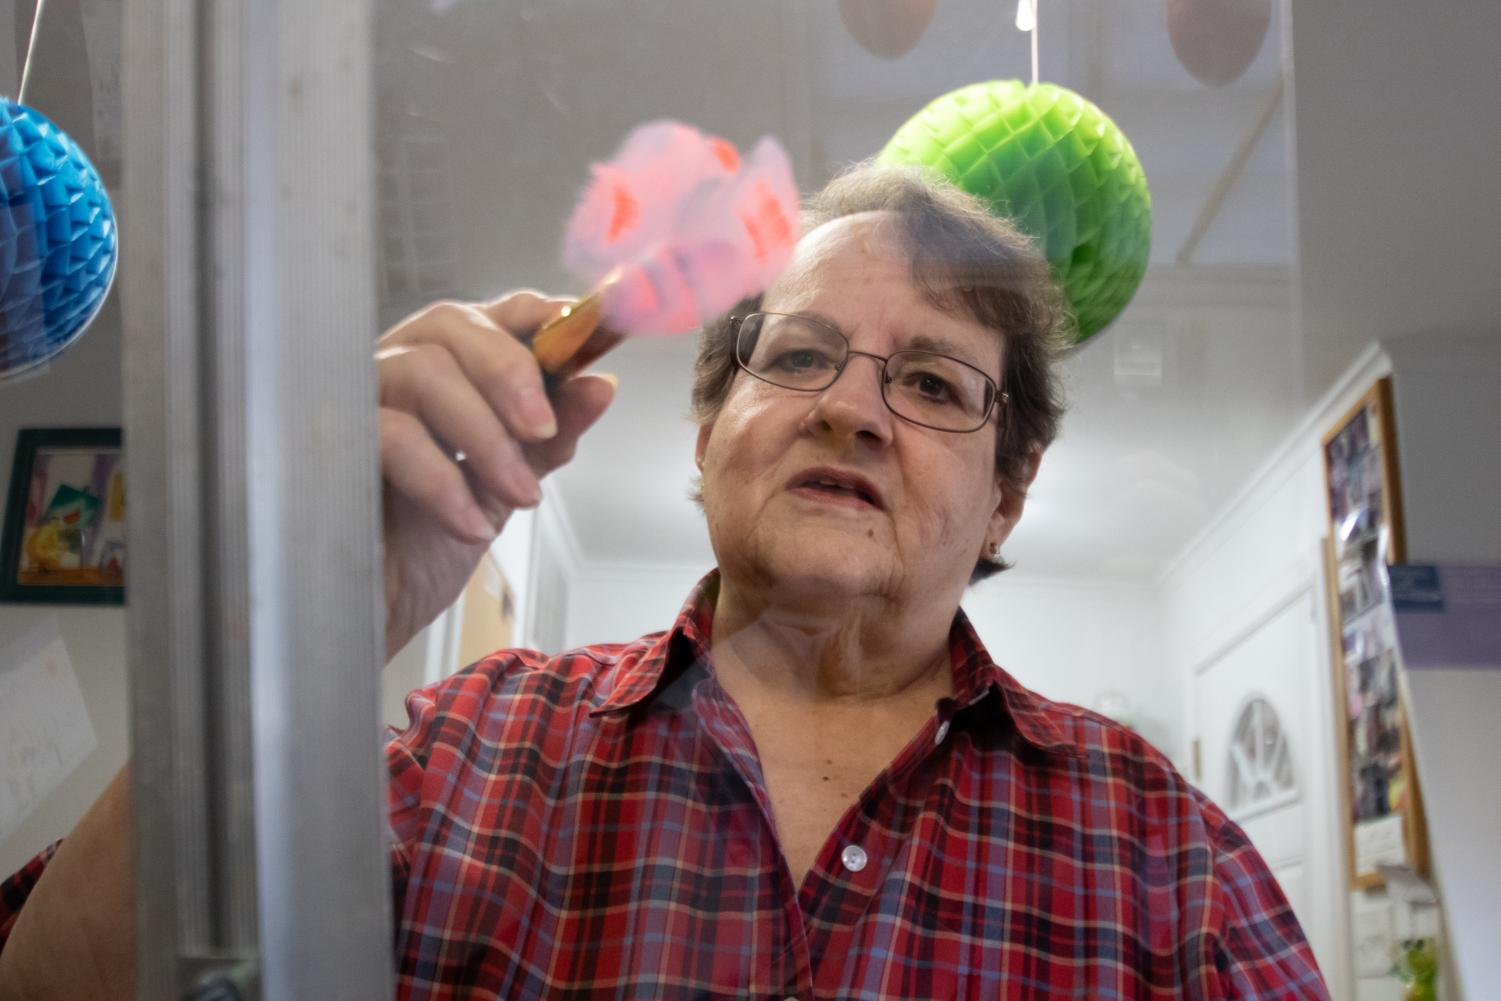 Judy McKinney paints on plexiglass to demonstrate the strokes oil paints make with brushes. McKinney offers private art lessons from her studio on Kennedy lane.